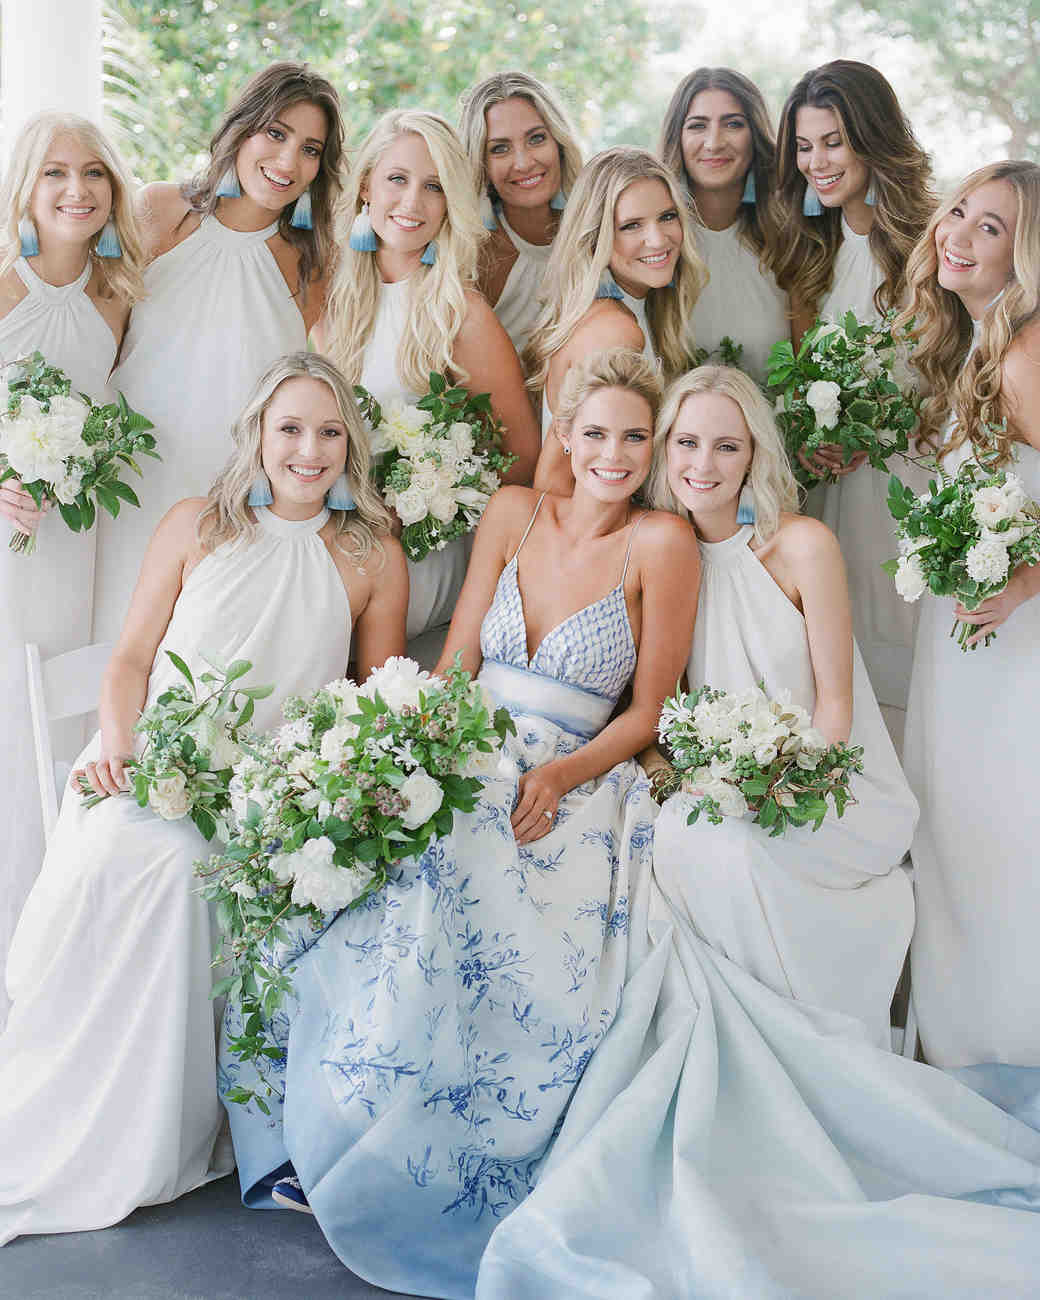 Mathew Christina Wedding: 12 New Rules For Dressing Your Bridesmaids